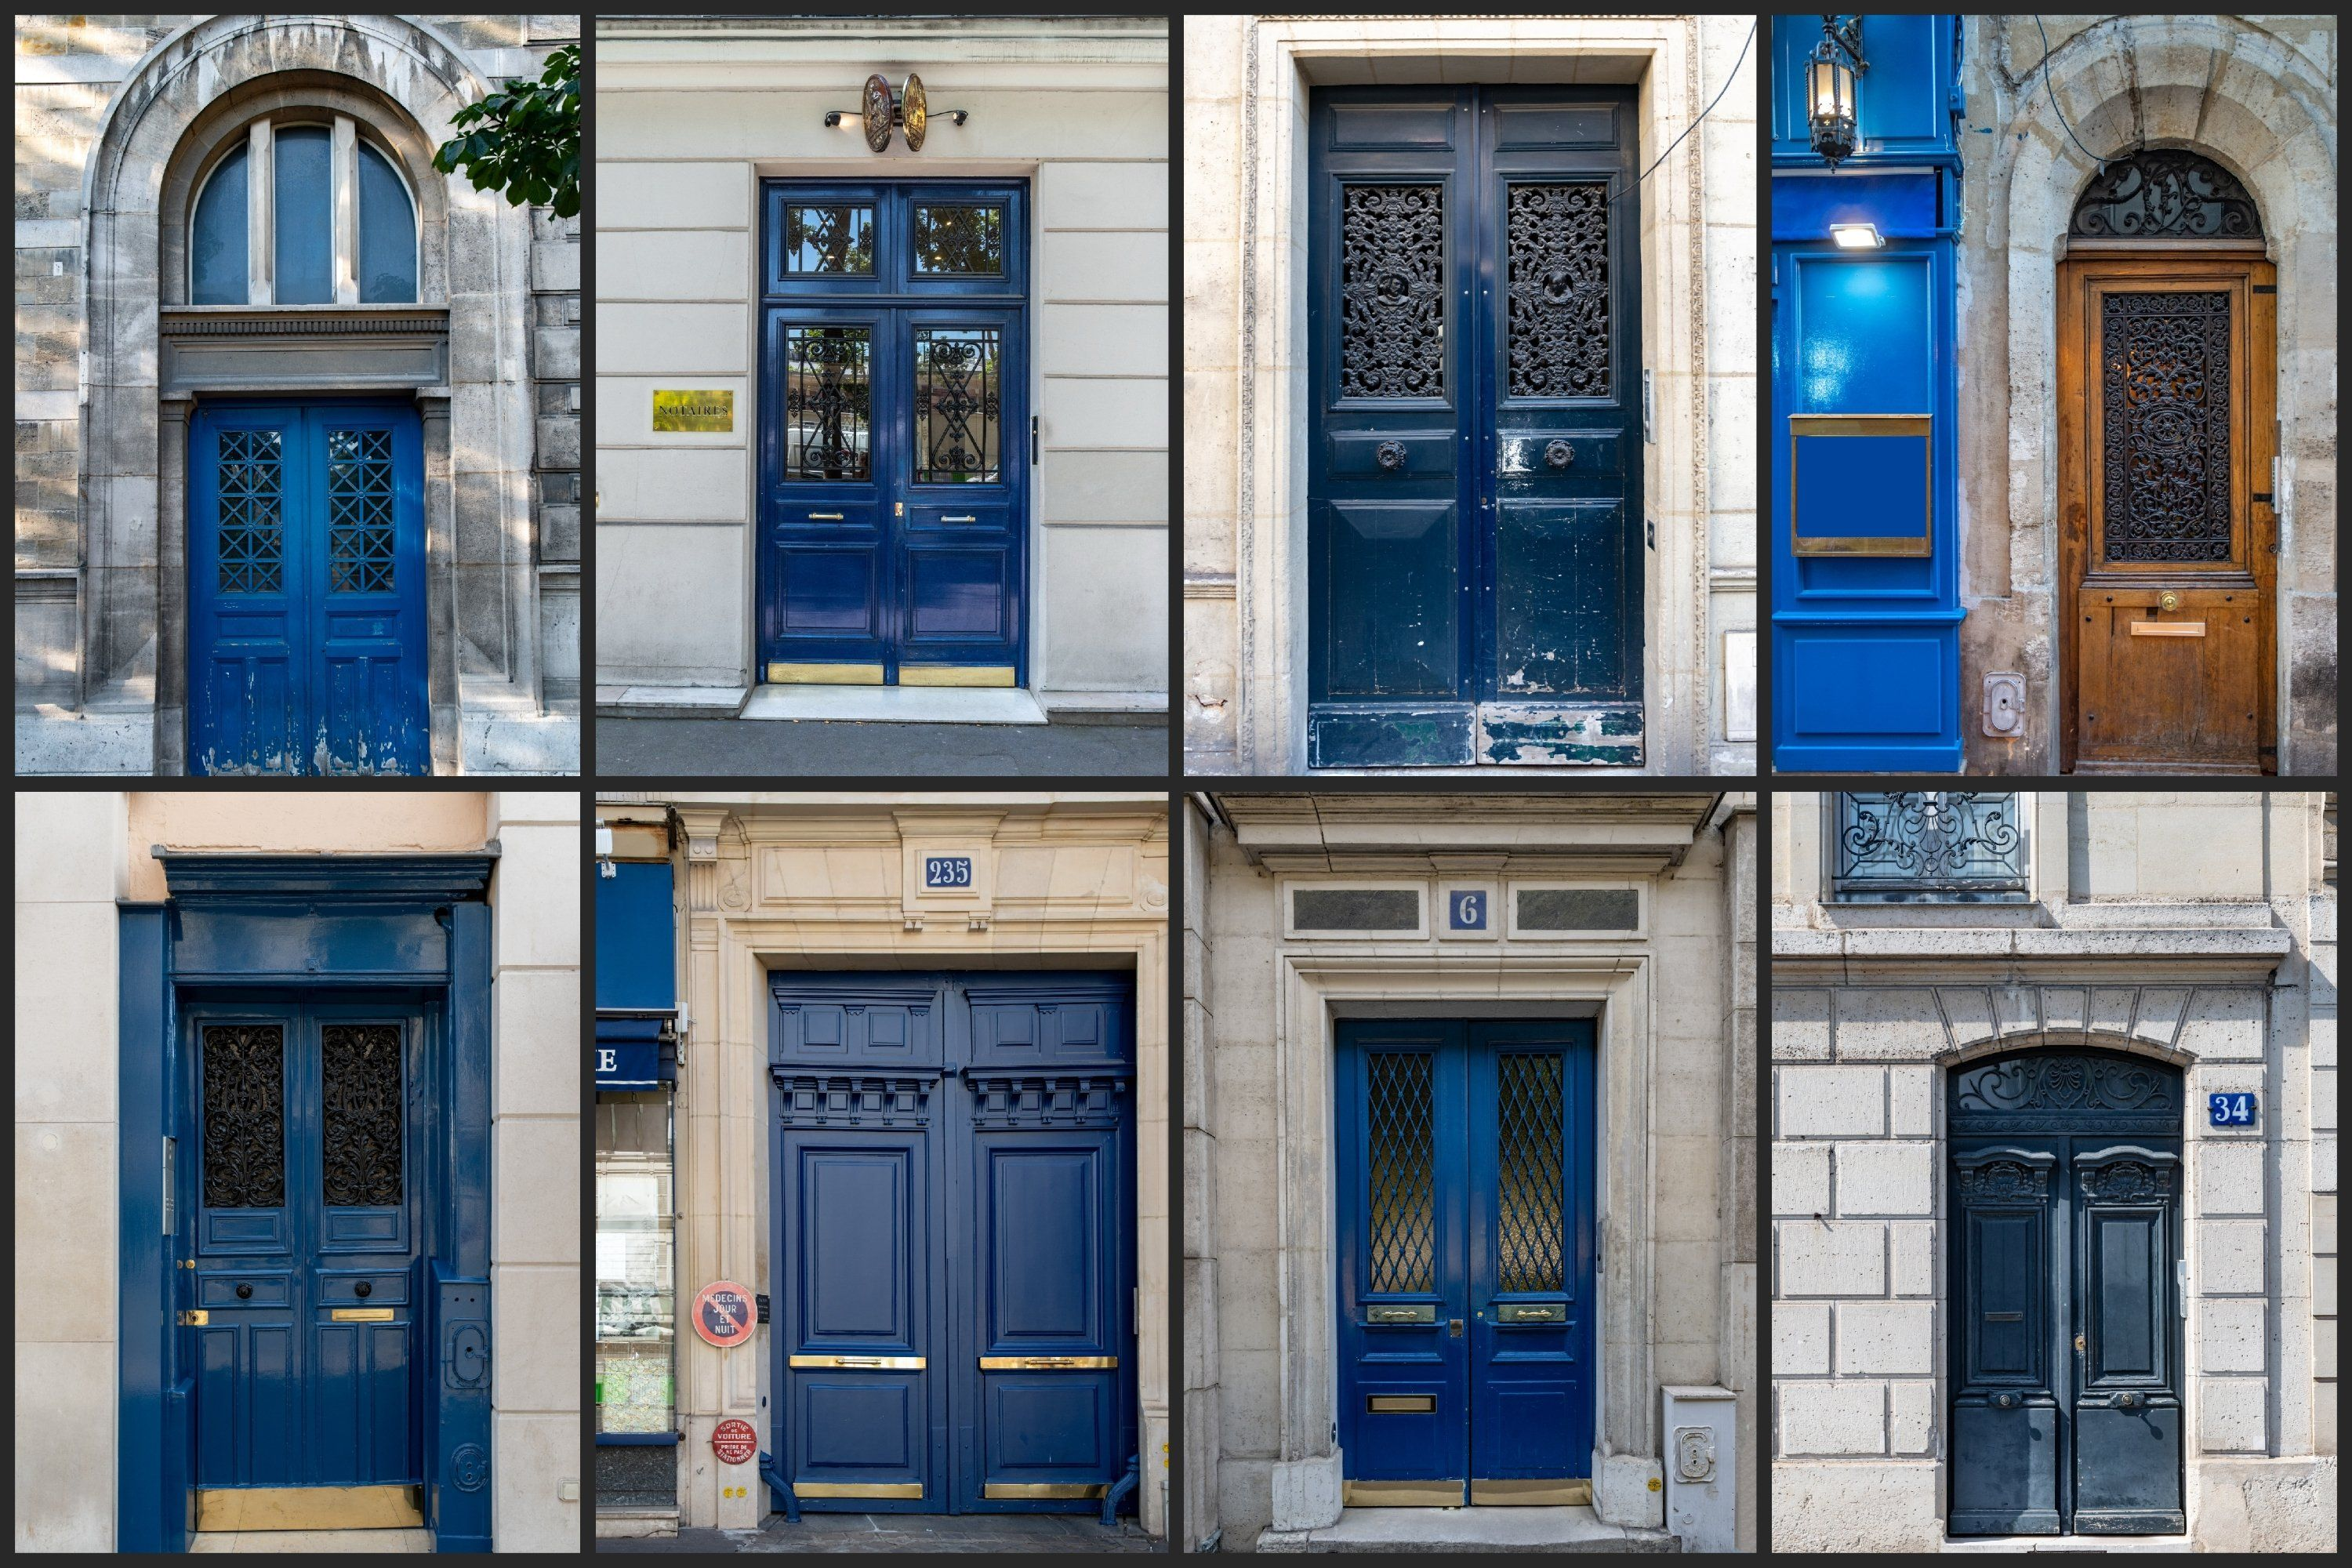 Paris Door Wall Art Set Of 26 Photos Vintage Blue Doors 594860 Travel And Adventure Design Bundles In 2020 Paris Door Wall Art Sets Adventure Design